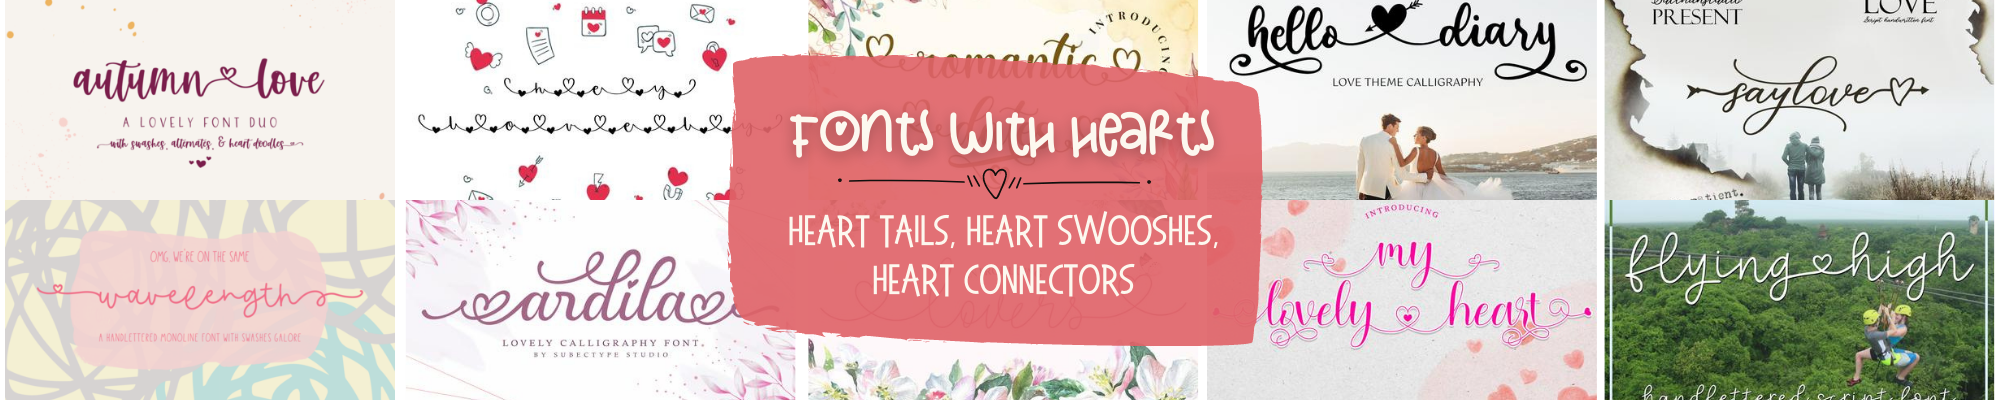 commercial use fonts with heart tails hearts in the middle